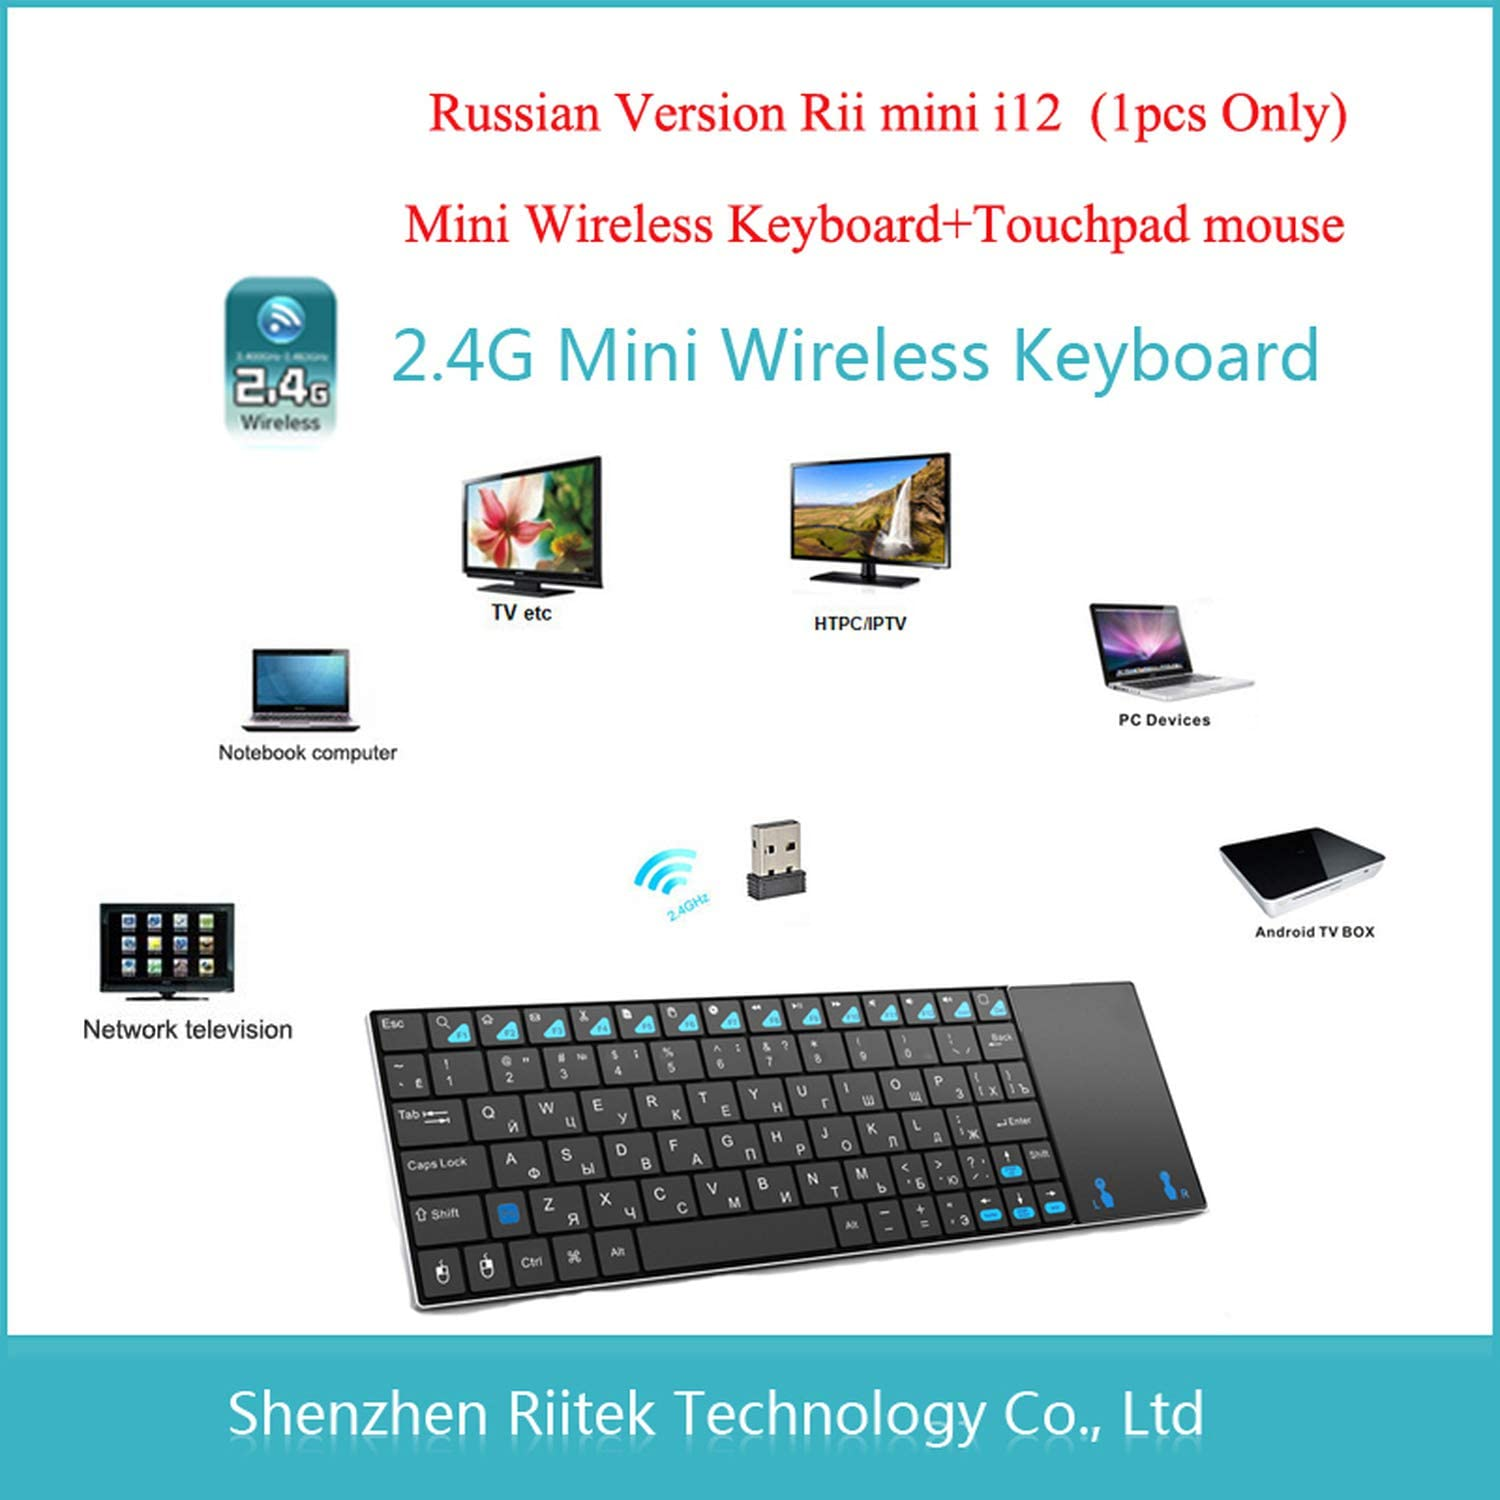 Bluetooth Keyboard with Touchpad Mouse for Pc Tablet Android,K12 Plus Wireless Russian Keyboard Mini K12+//I12 Wireless Keyboard and K12